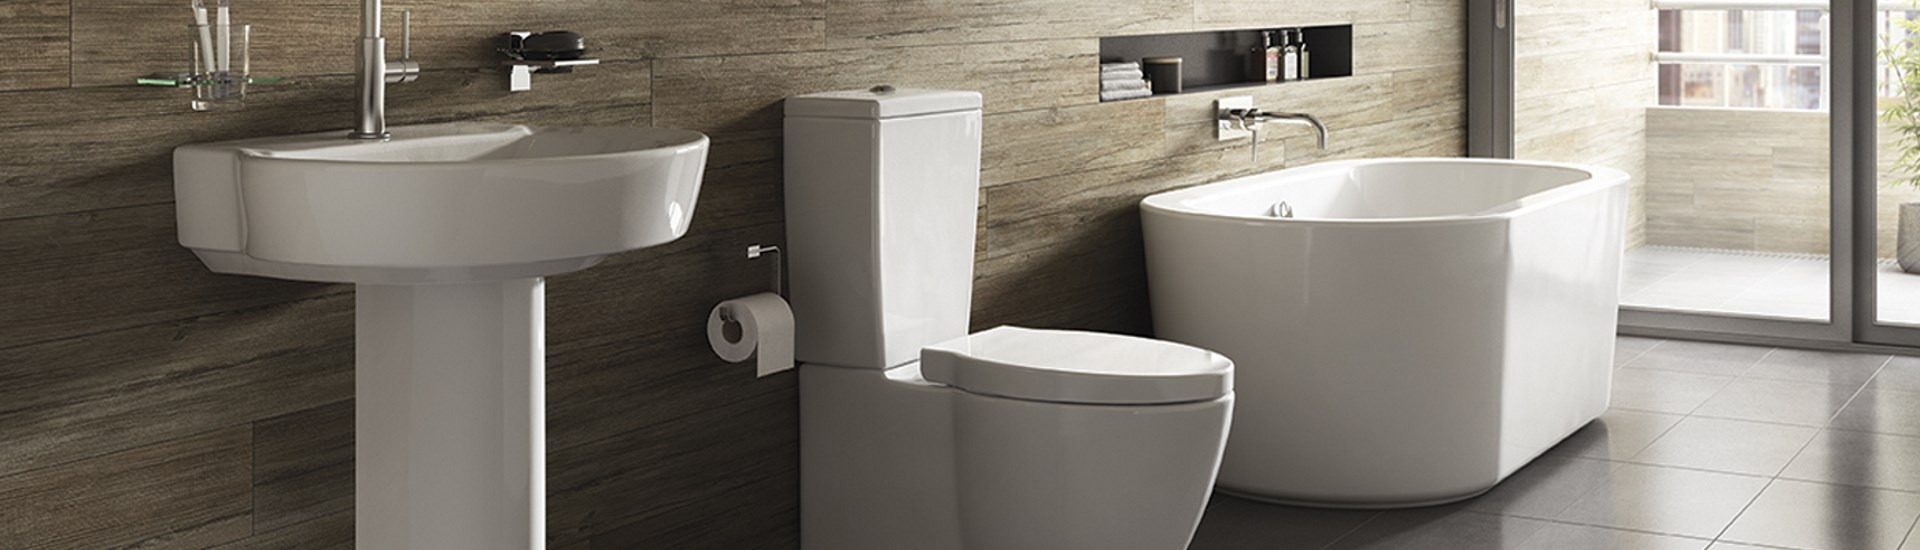 Bathroom design and installation in Carlisle, Cumbria